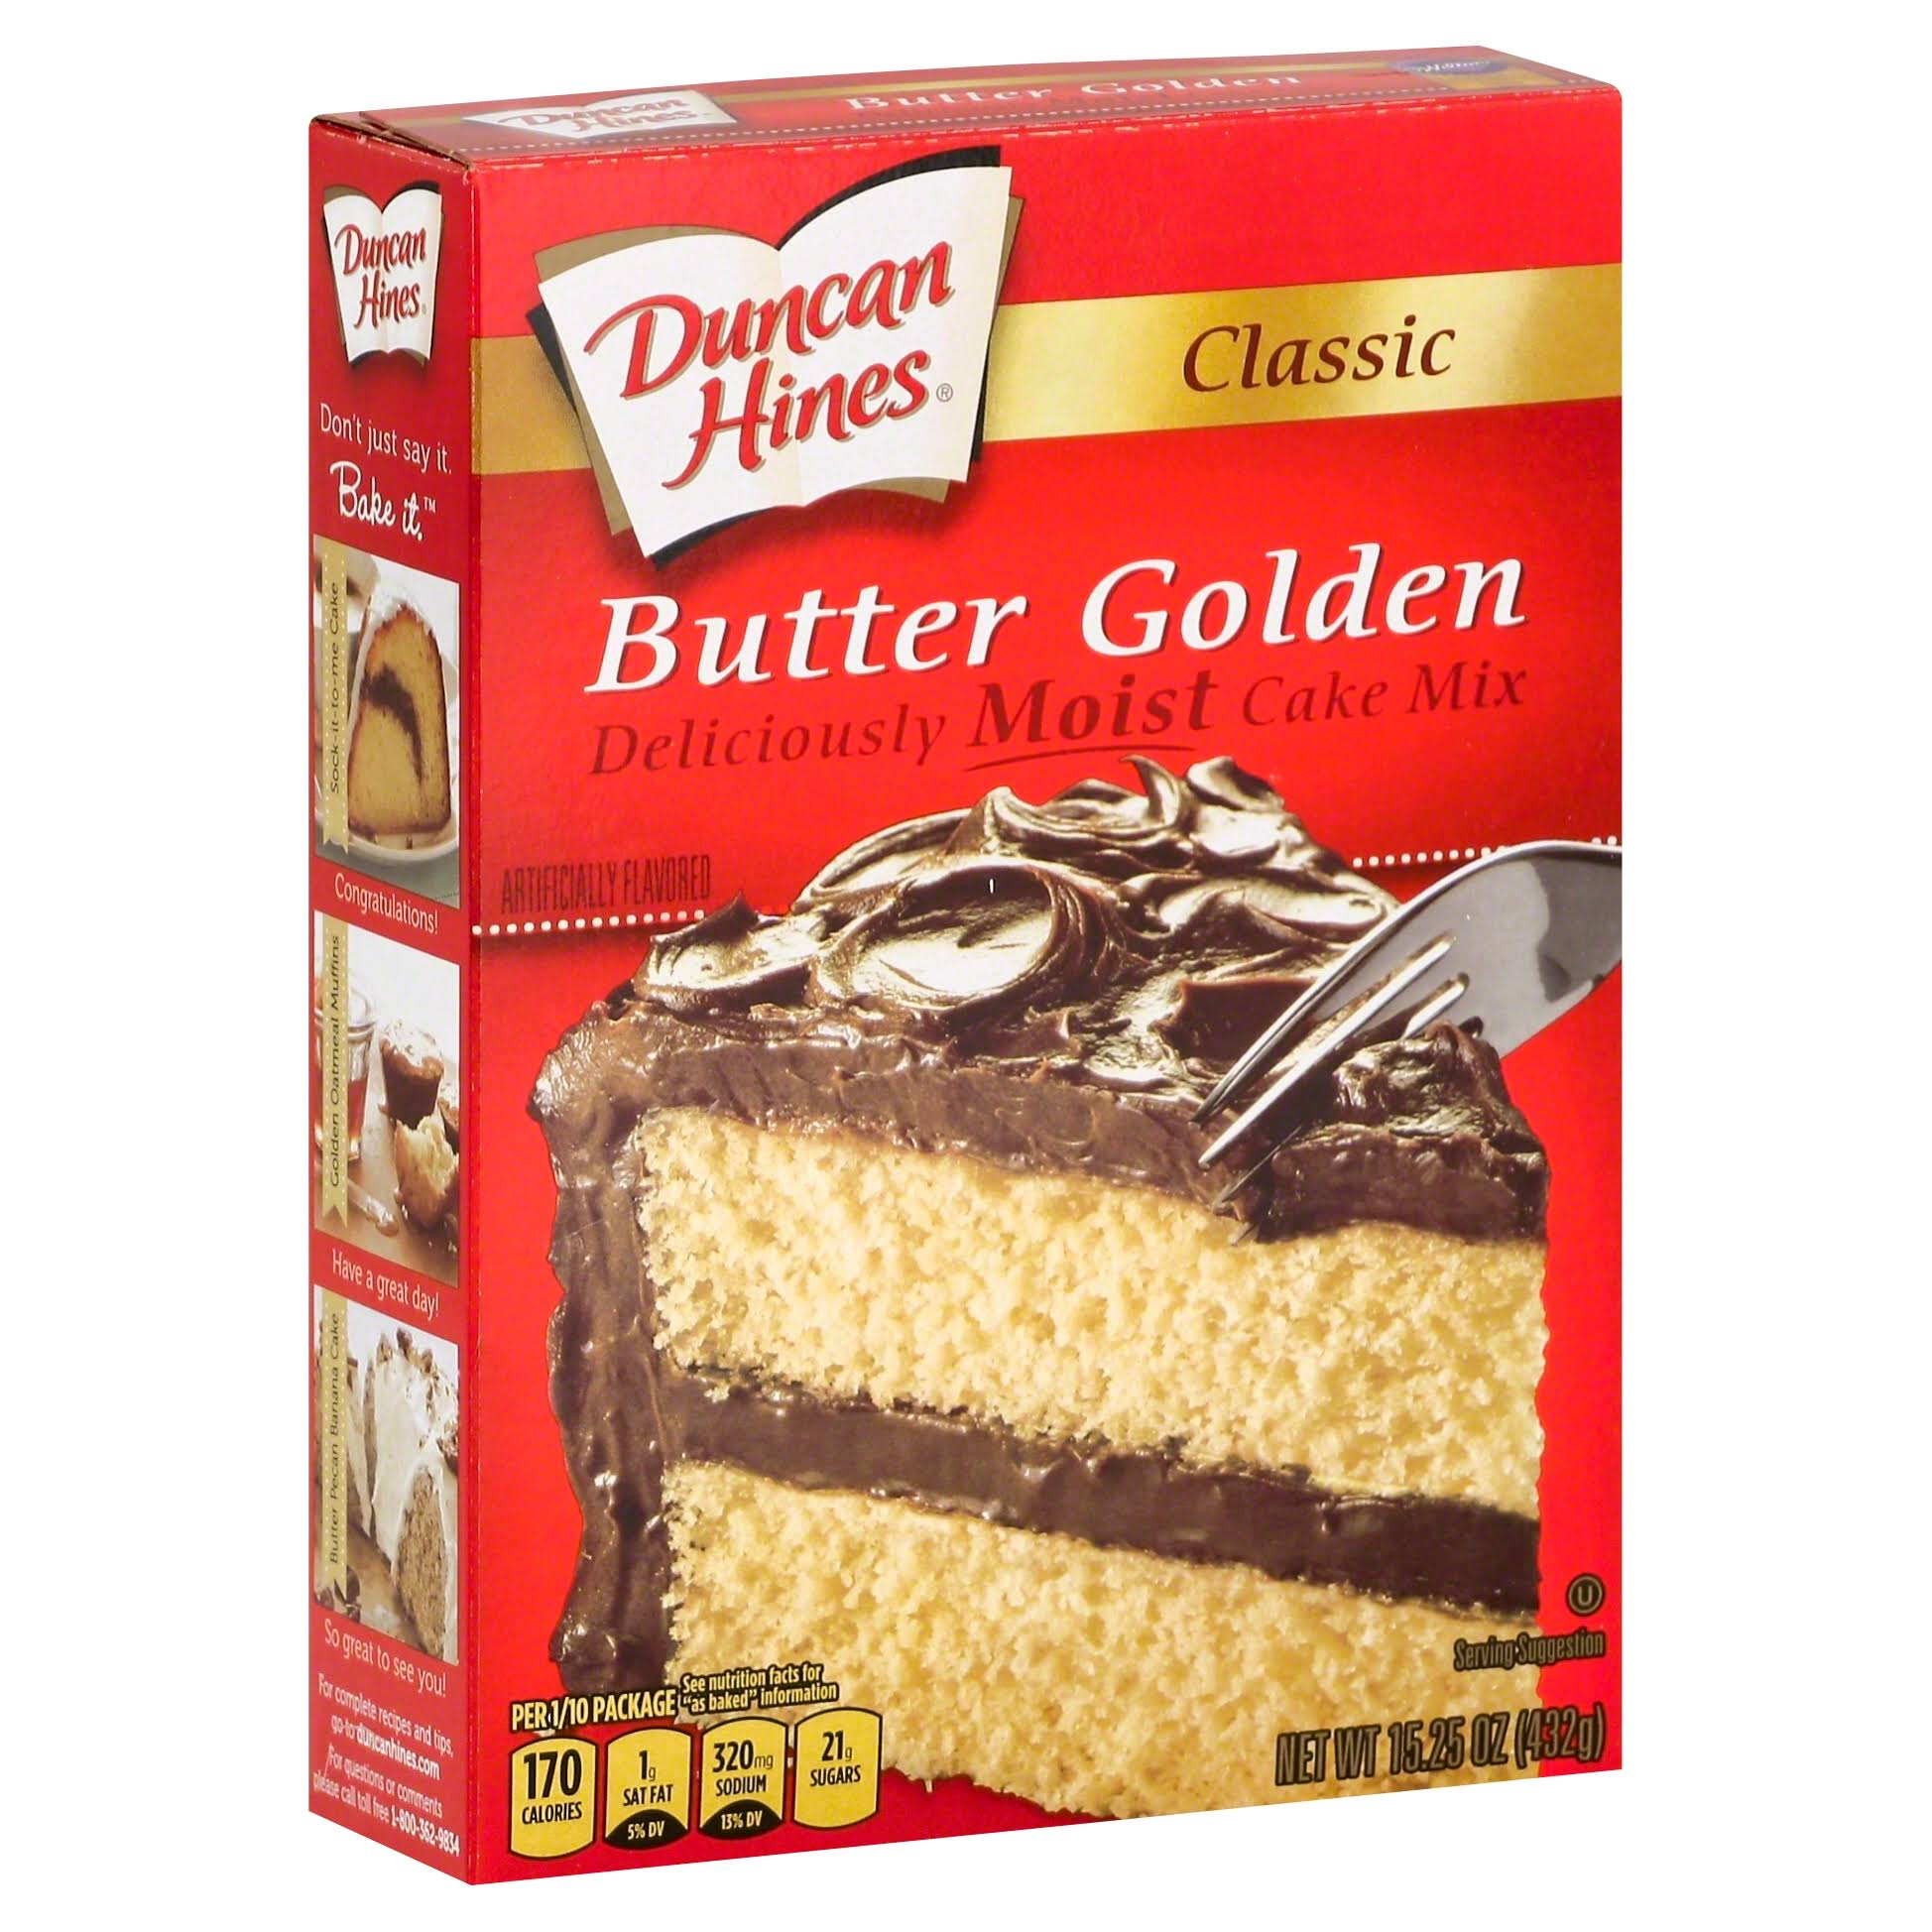 Duncan Hines Classic Butter Golden Cake Mix - 15.25 oz